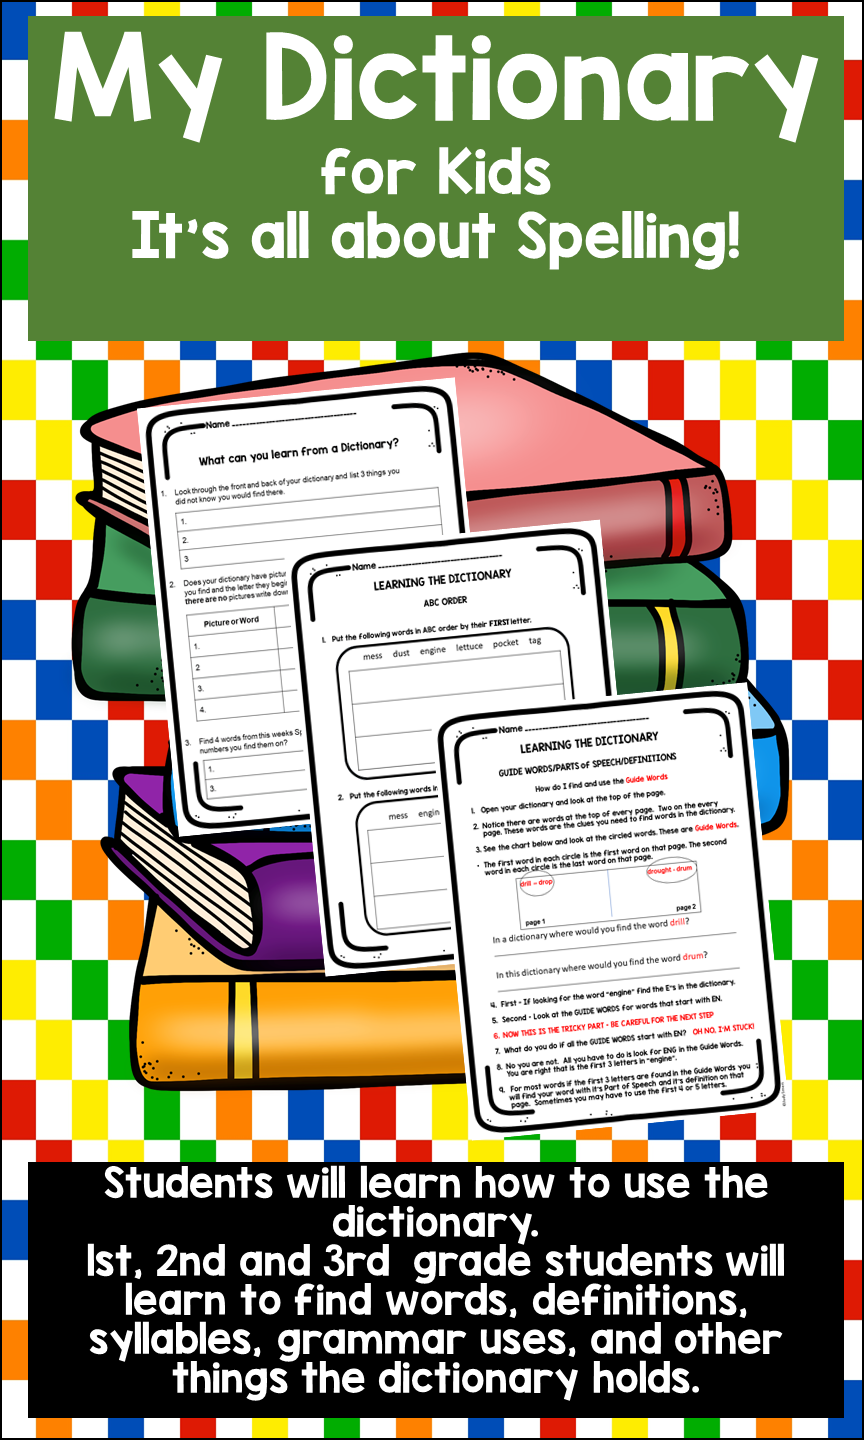 Learning How to Use the Dictionary | Dictionary for kids. Guide words. All about spelling